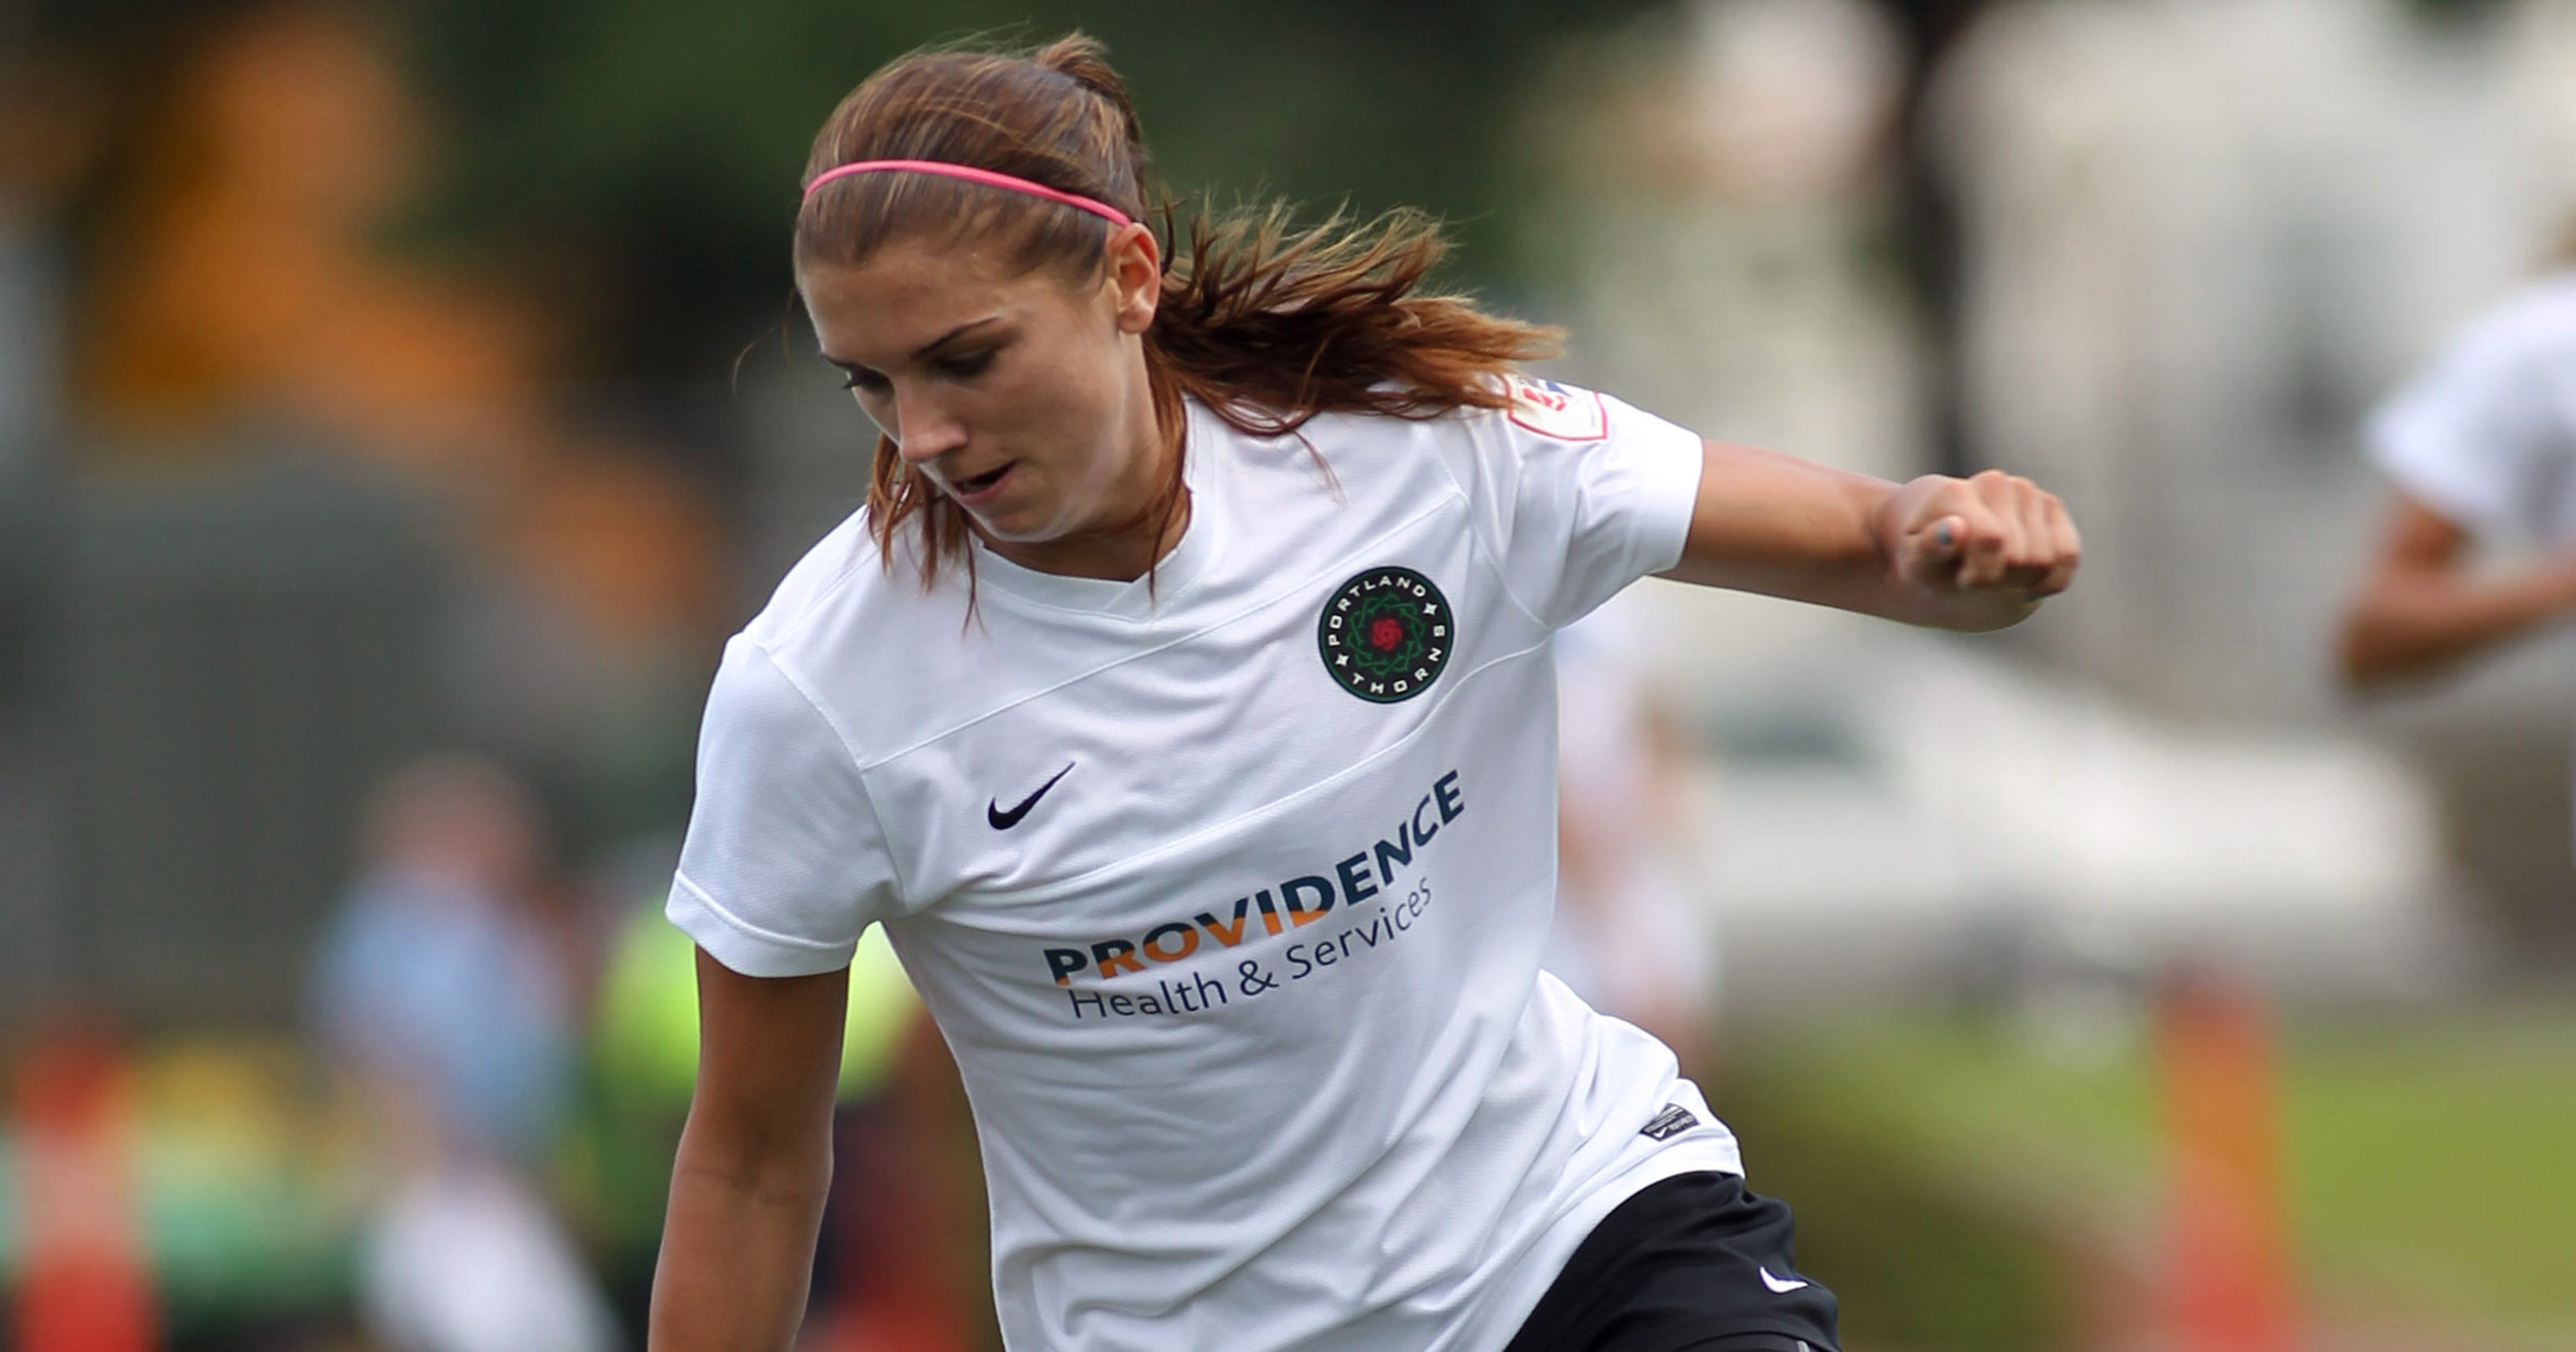 Alex Morgan on why artificial turf is tough for players